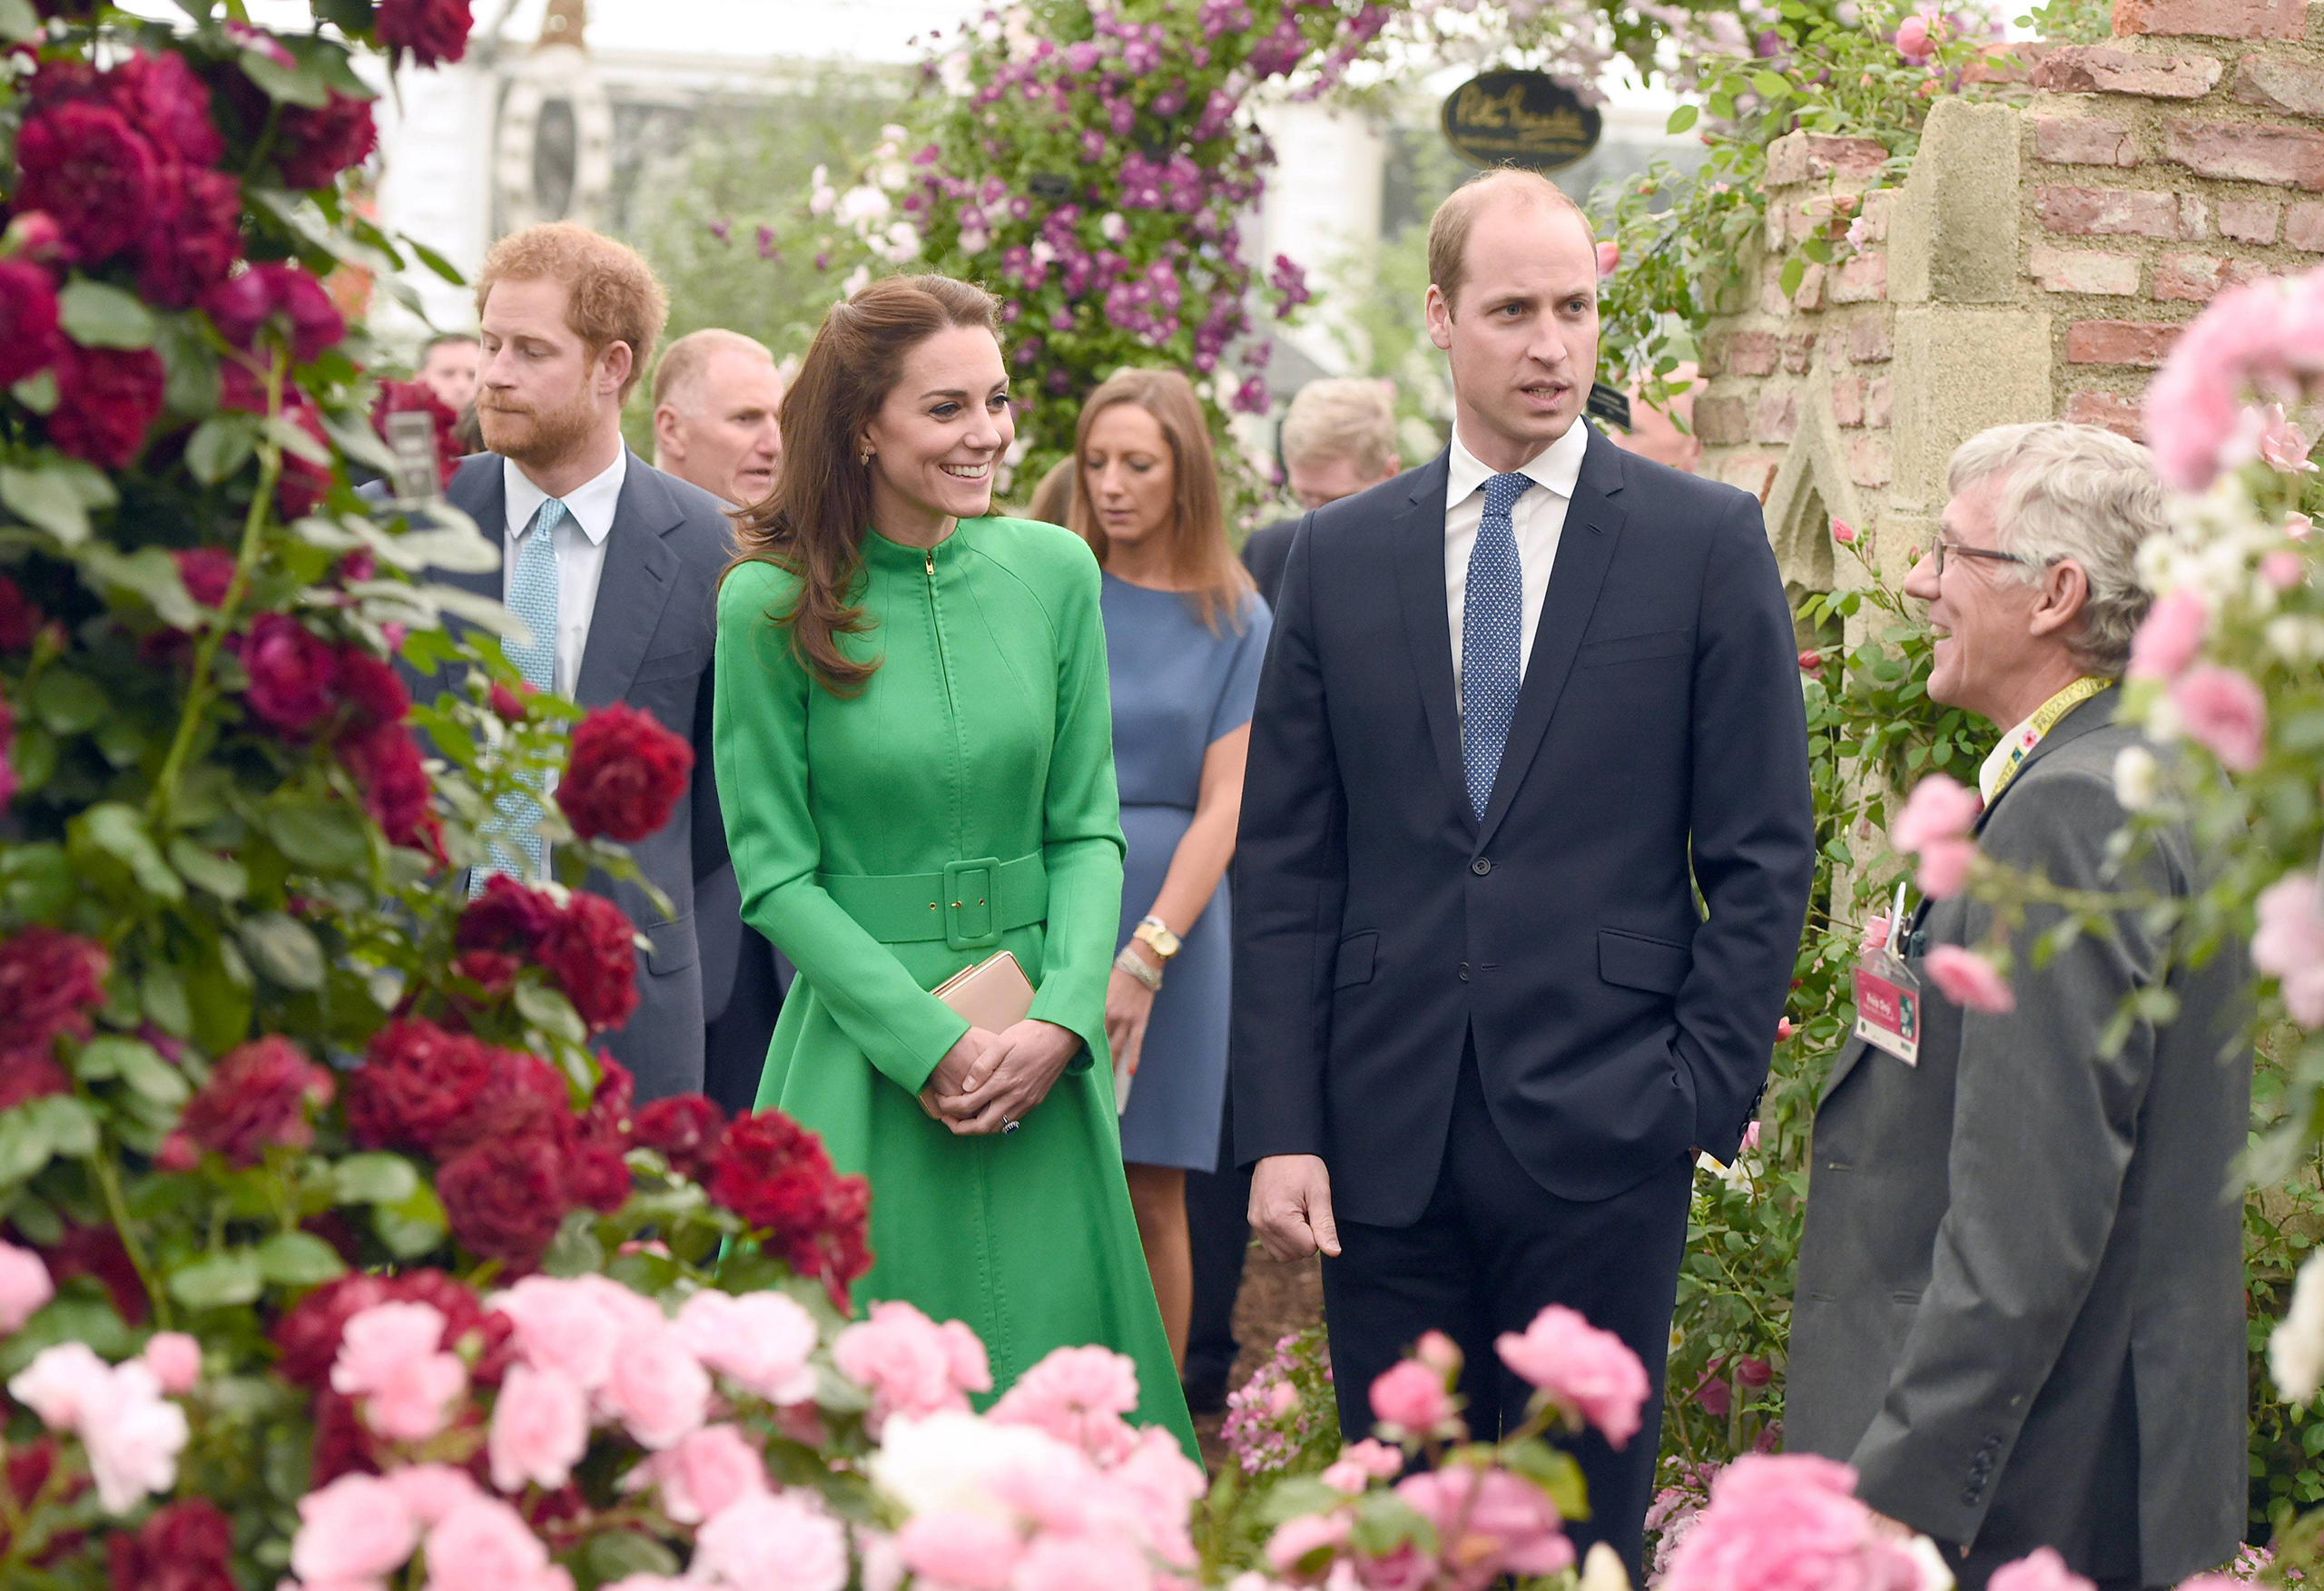 Prince William and Catherine, Duchess of Cambridge, are joined by Prince Harry during a visit to the 2016 Chelsea Flower Show in London on May 23, 2016.